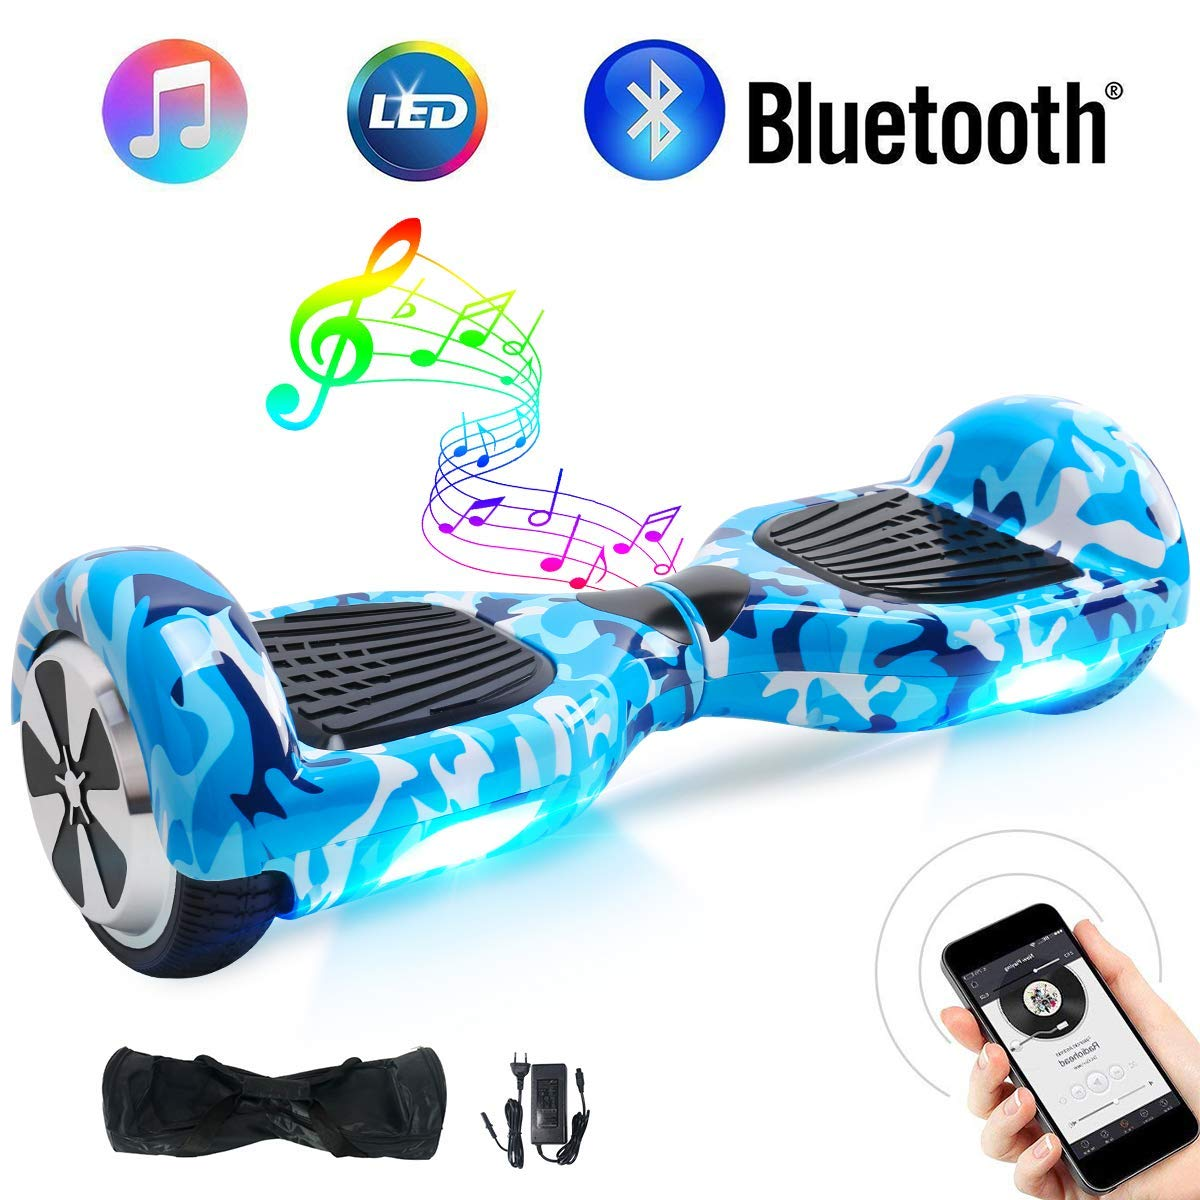 Windgoo Hoverboard Bluetooth 6,5 Pouces Gyropode Hoverboard Enfant, Hover Board Auto-Equilibrage Skateboard 700W Moteurs, Luces LED Auto Balance ...